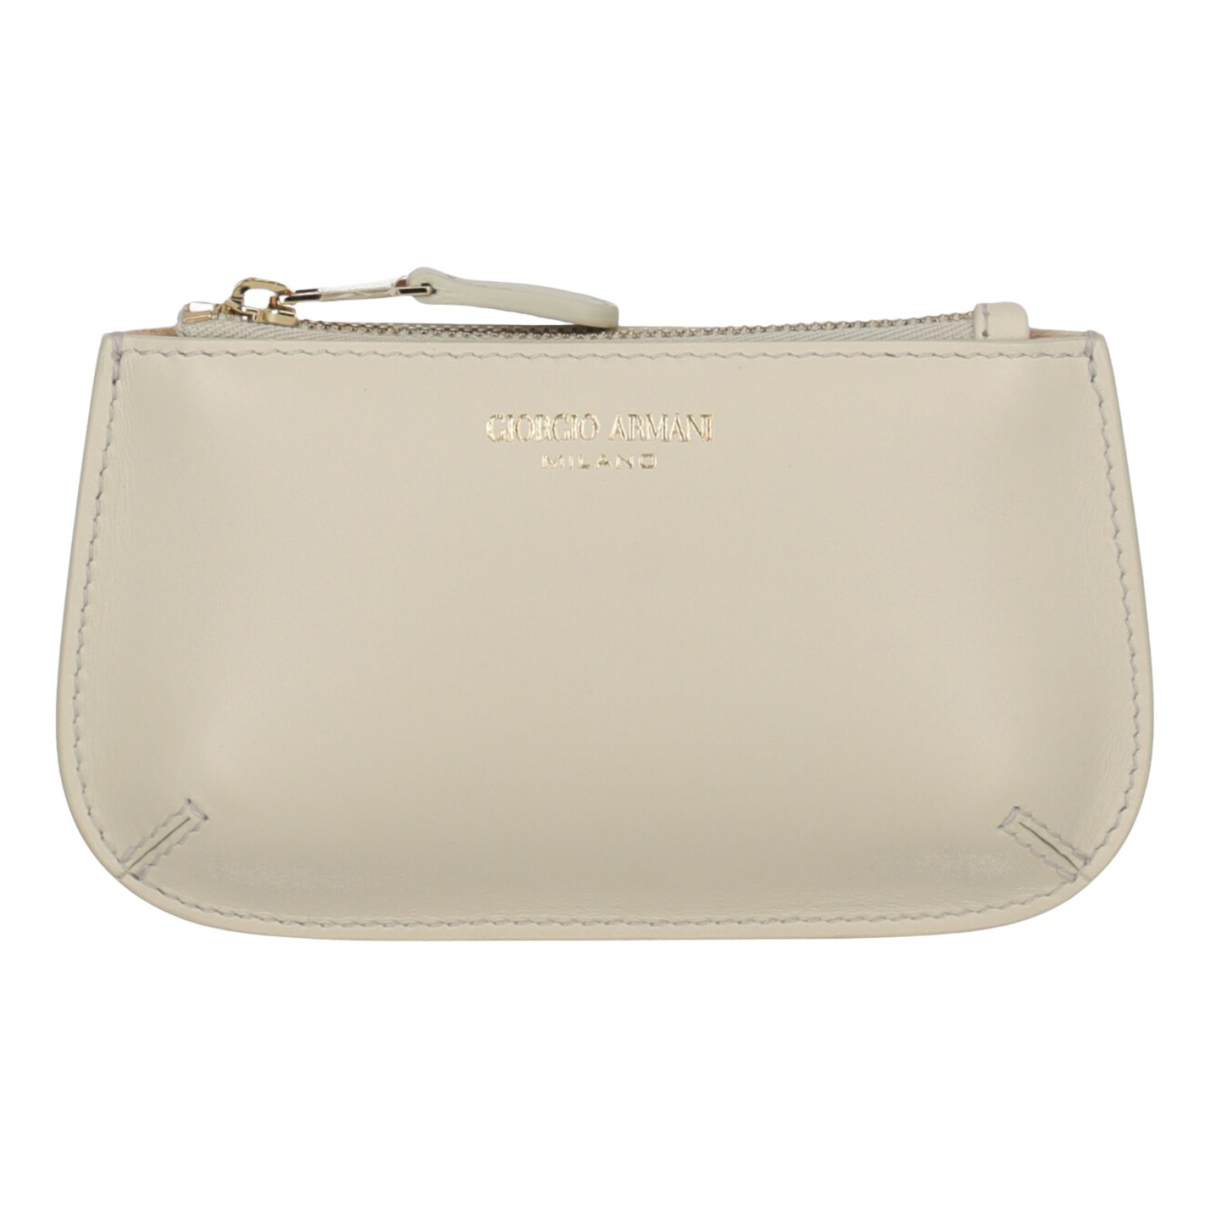 Giorgio Armani N White Leather wallet for Women N